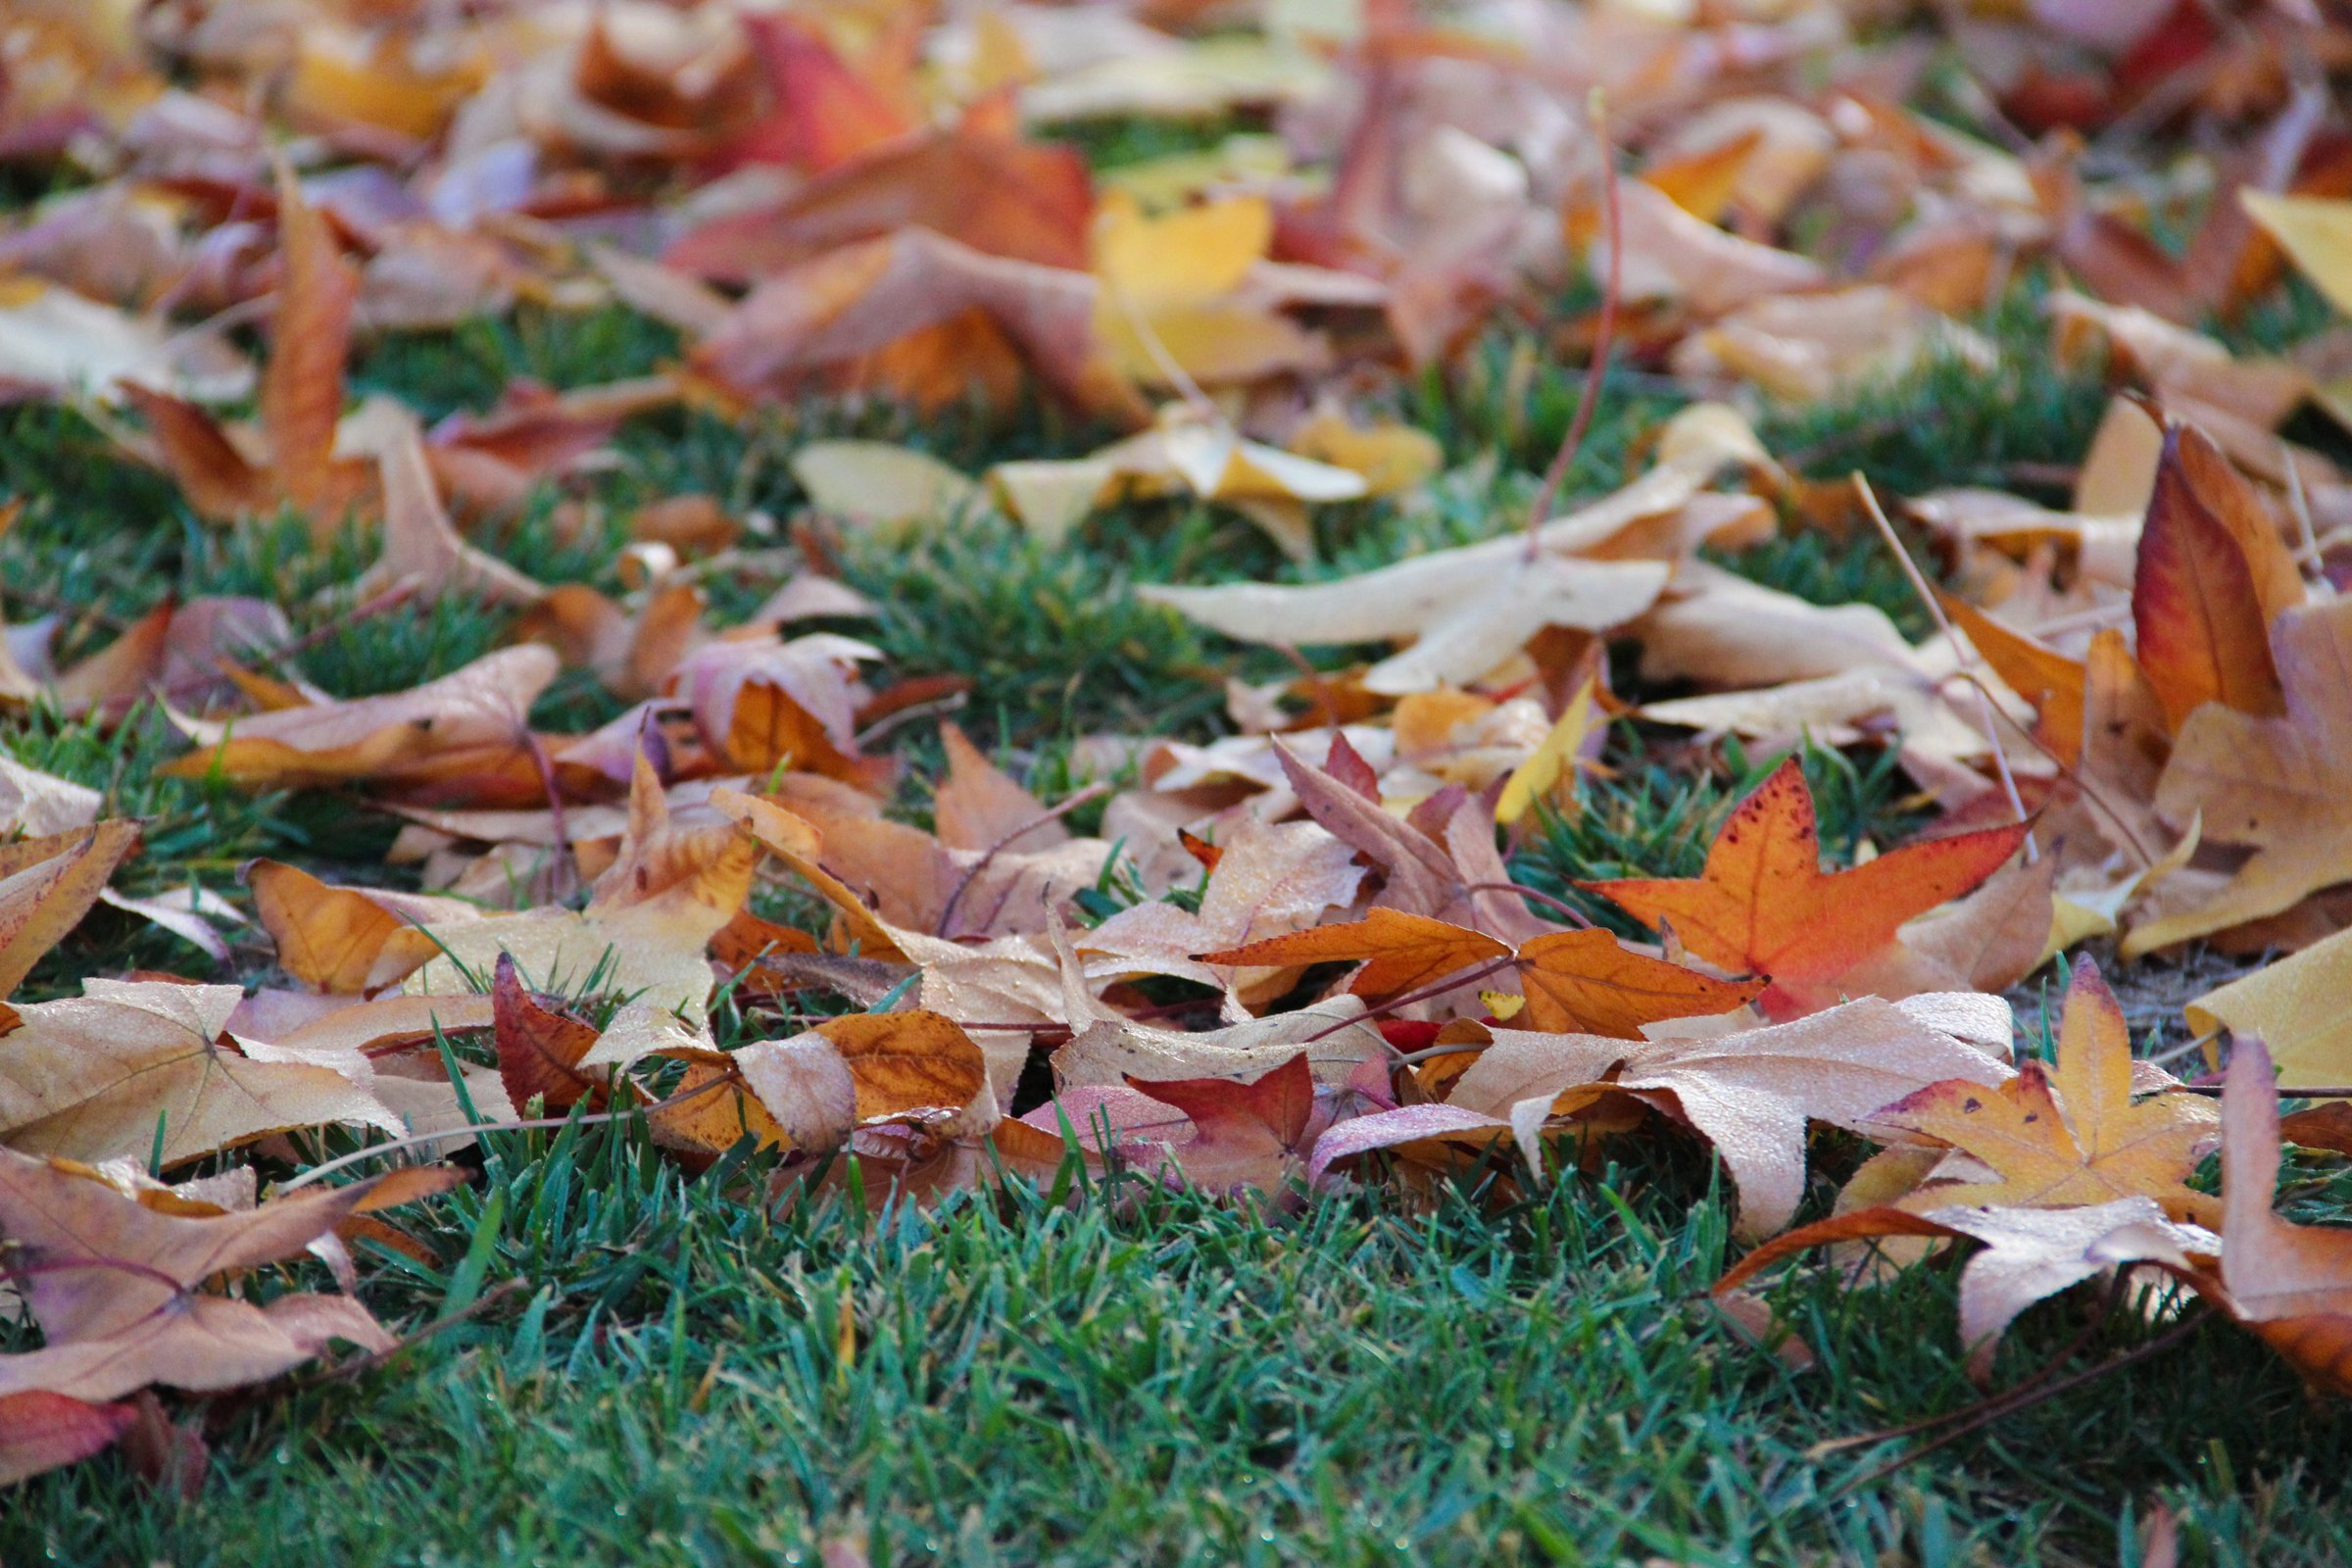 Dry Leaves on Grass